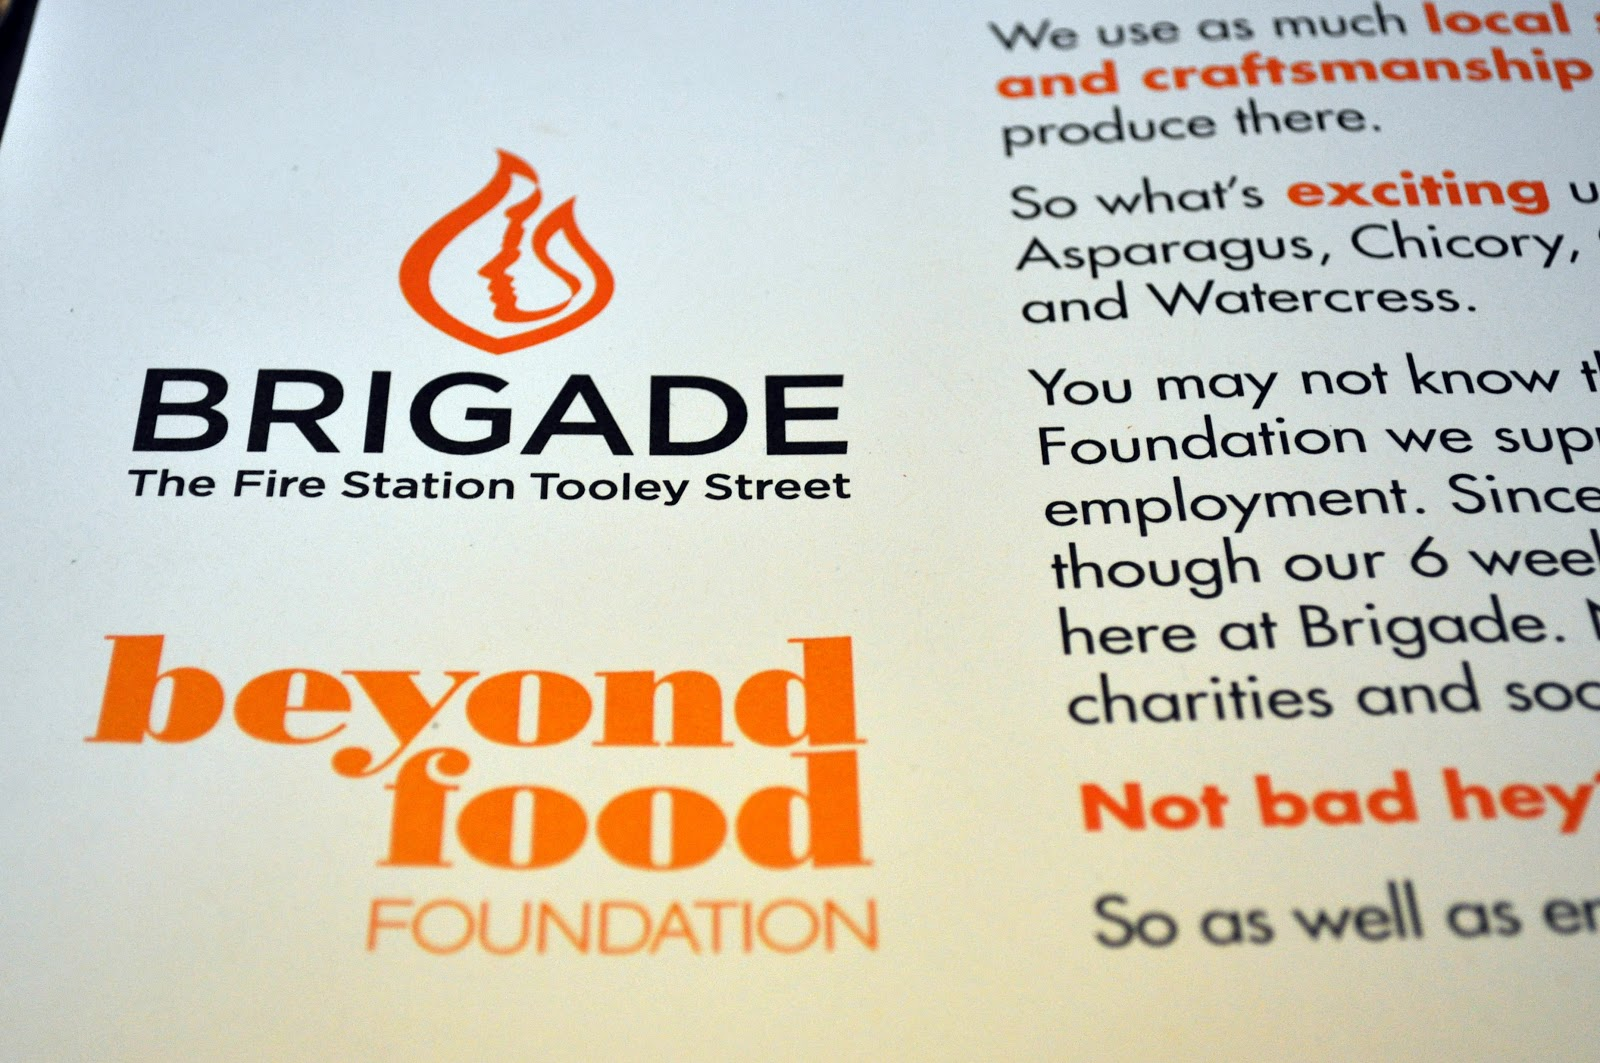 Brigade and Beyond Food, London Tooley Street